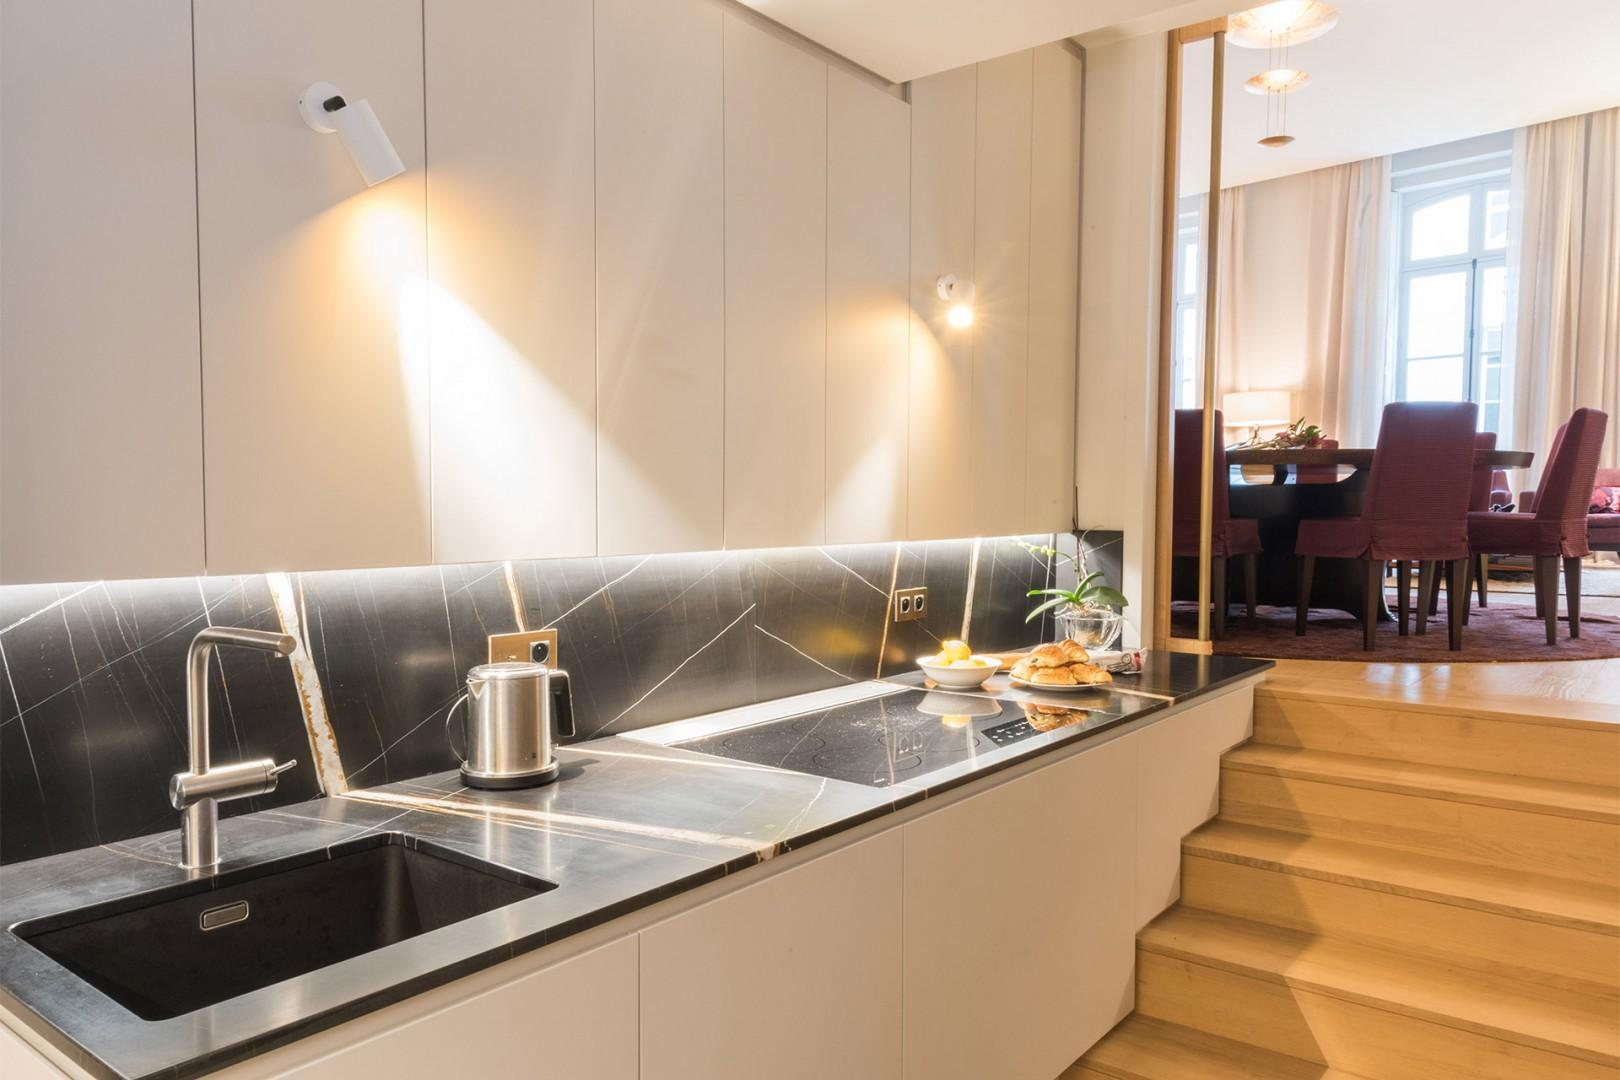 Gourmands will love this beautifully designed kitchen.